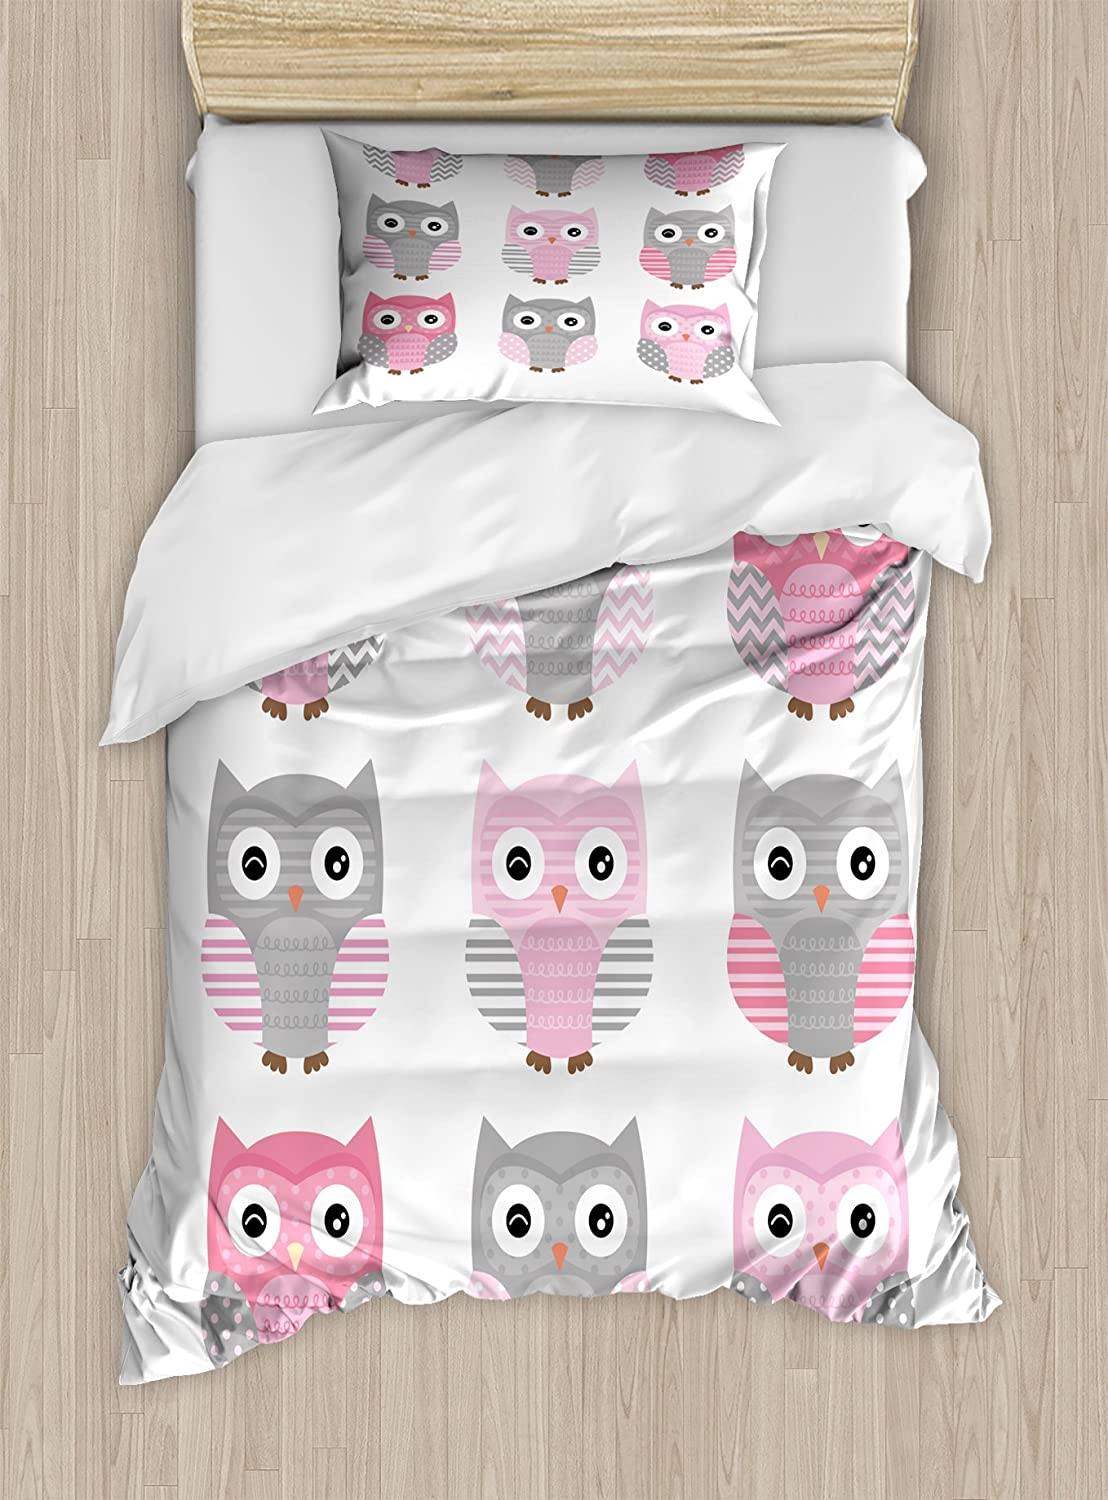 Ambesonne Pink and Grey Duvet Cover Set, Owl Nocturnal Exotic Mystic Forest Night Animals Illustration, Decorative 2 Piece Bedding Set with 1 Pillow Sham, Twin Size, Blush Grey